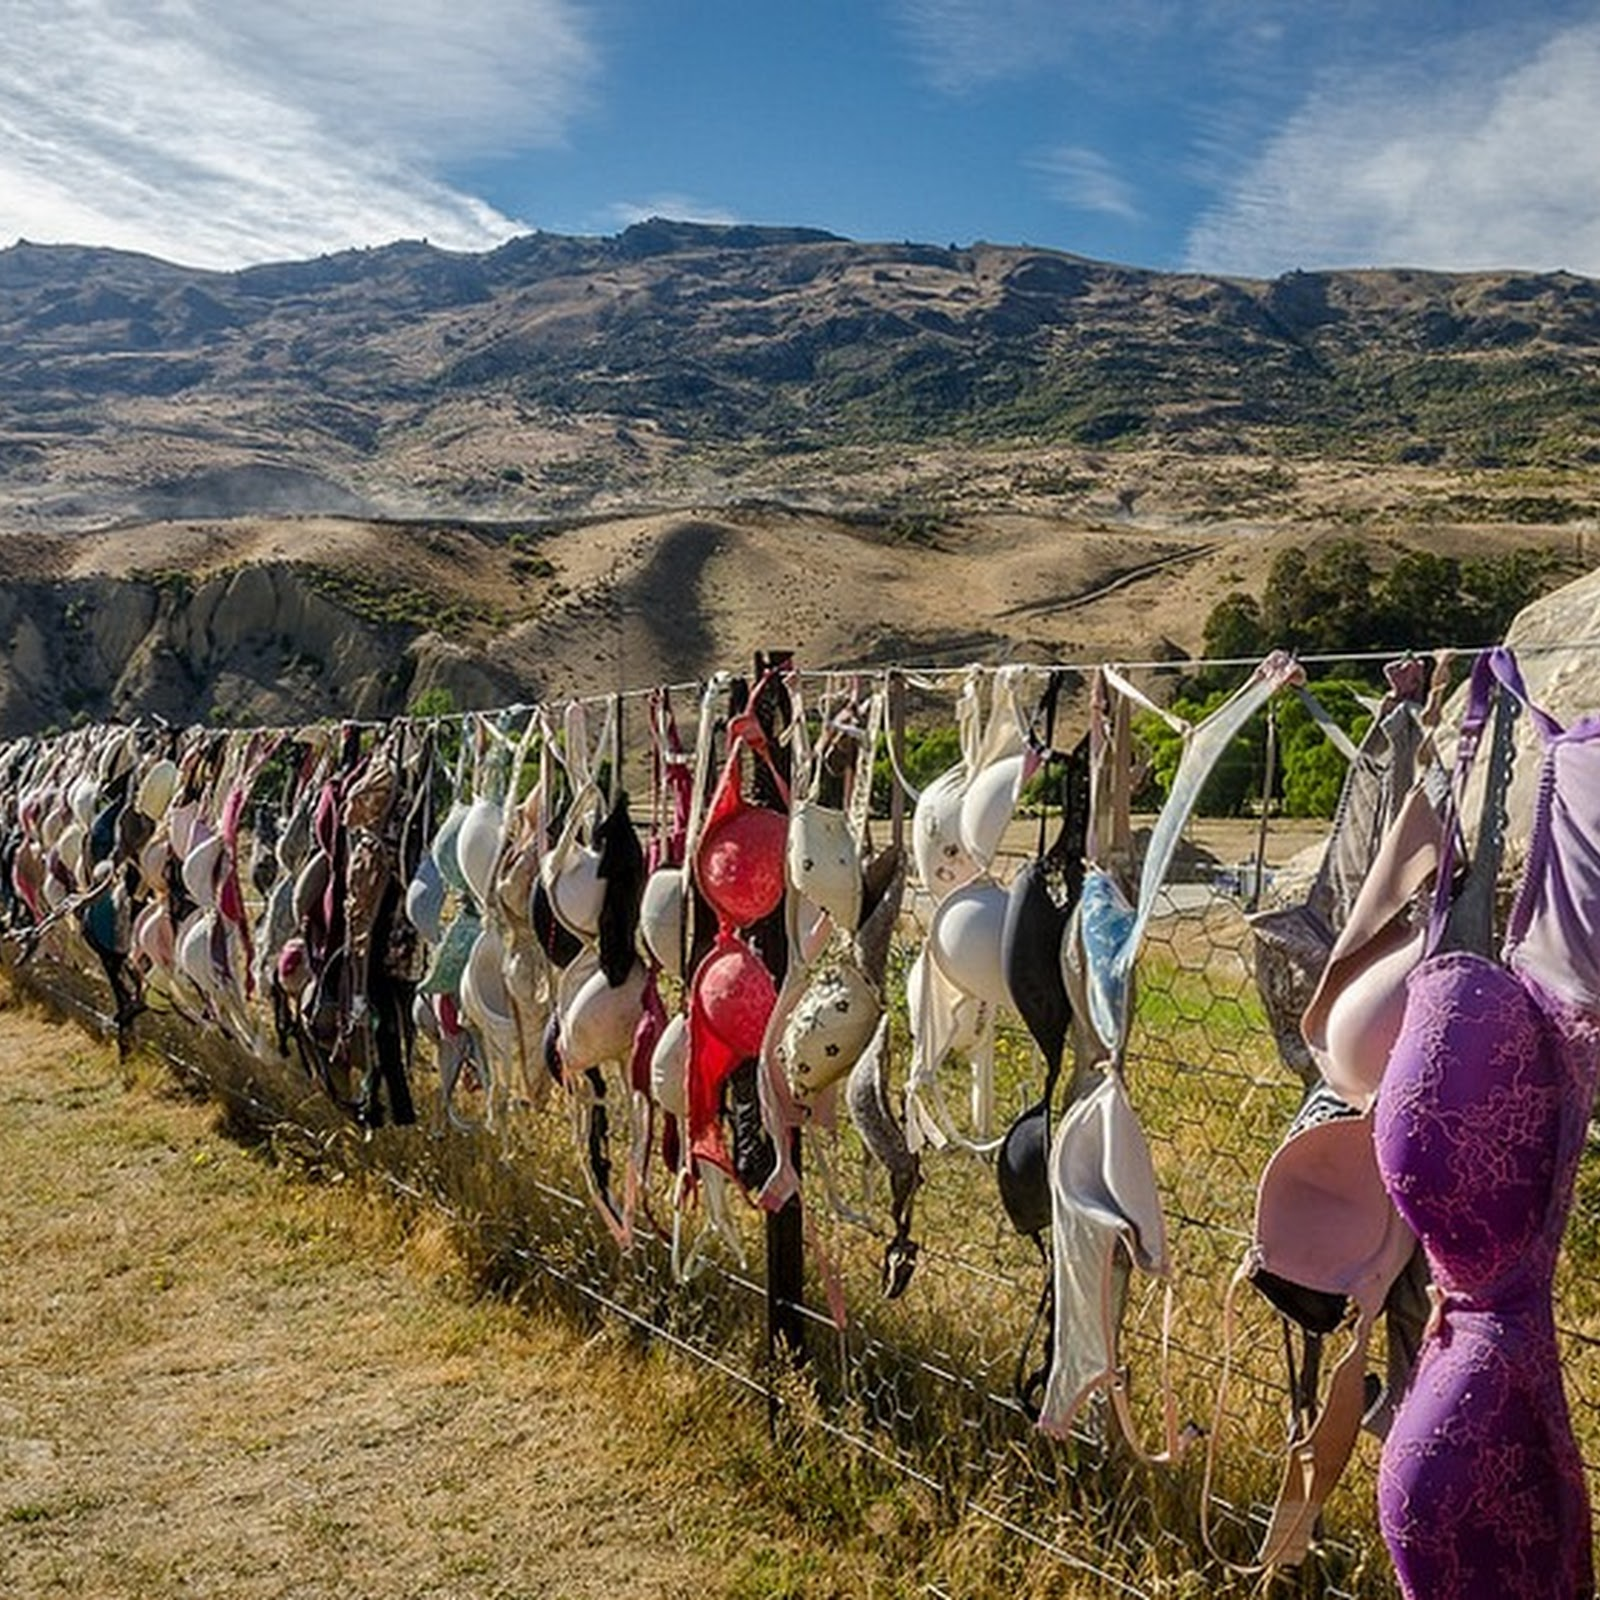 Decorating Fences With Trash, The New Zealander Way